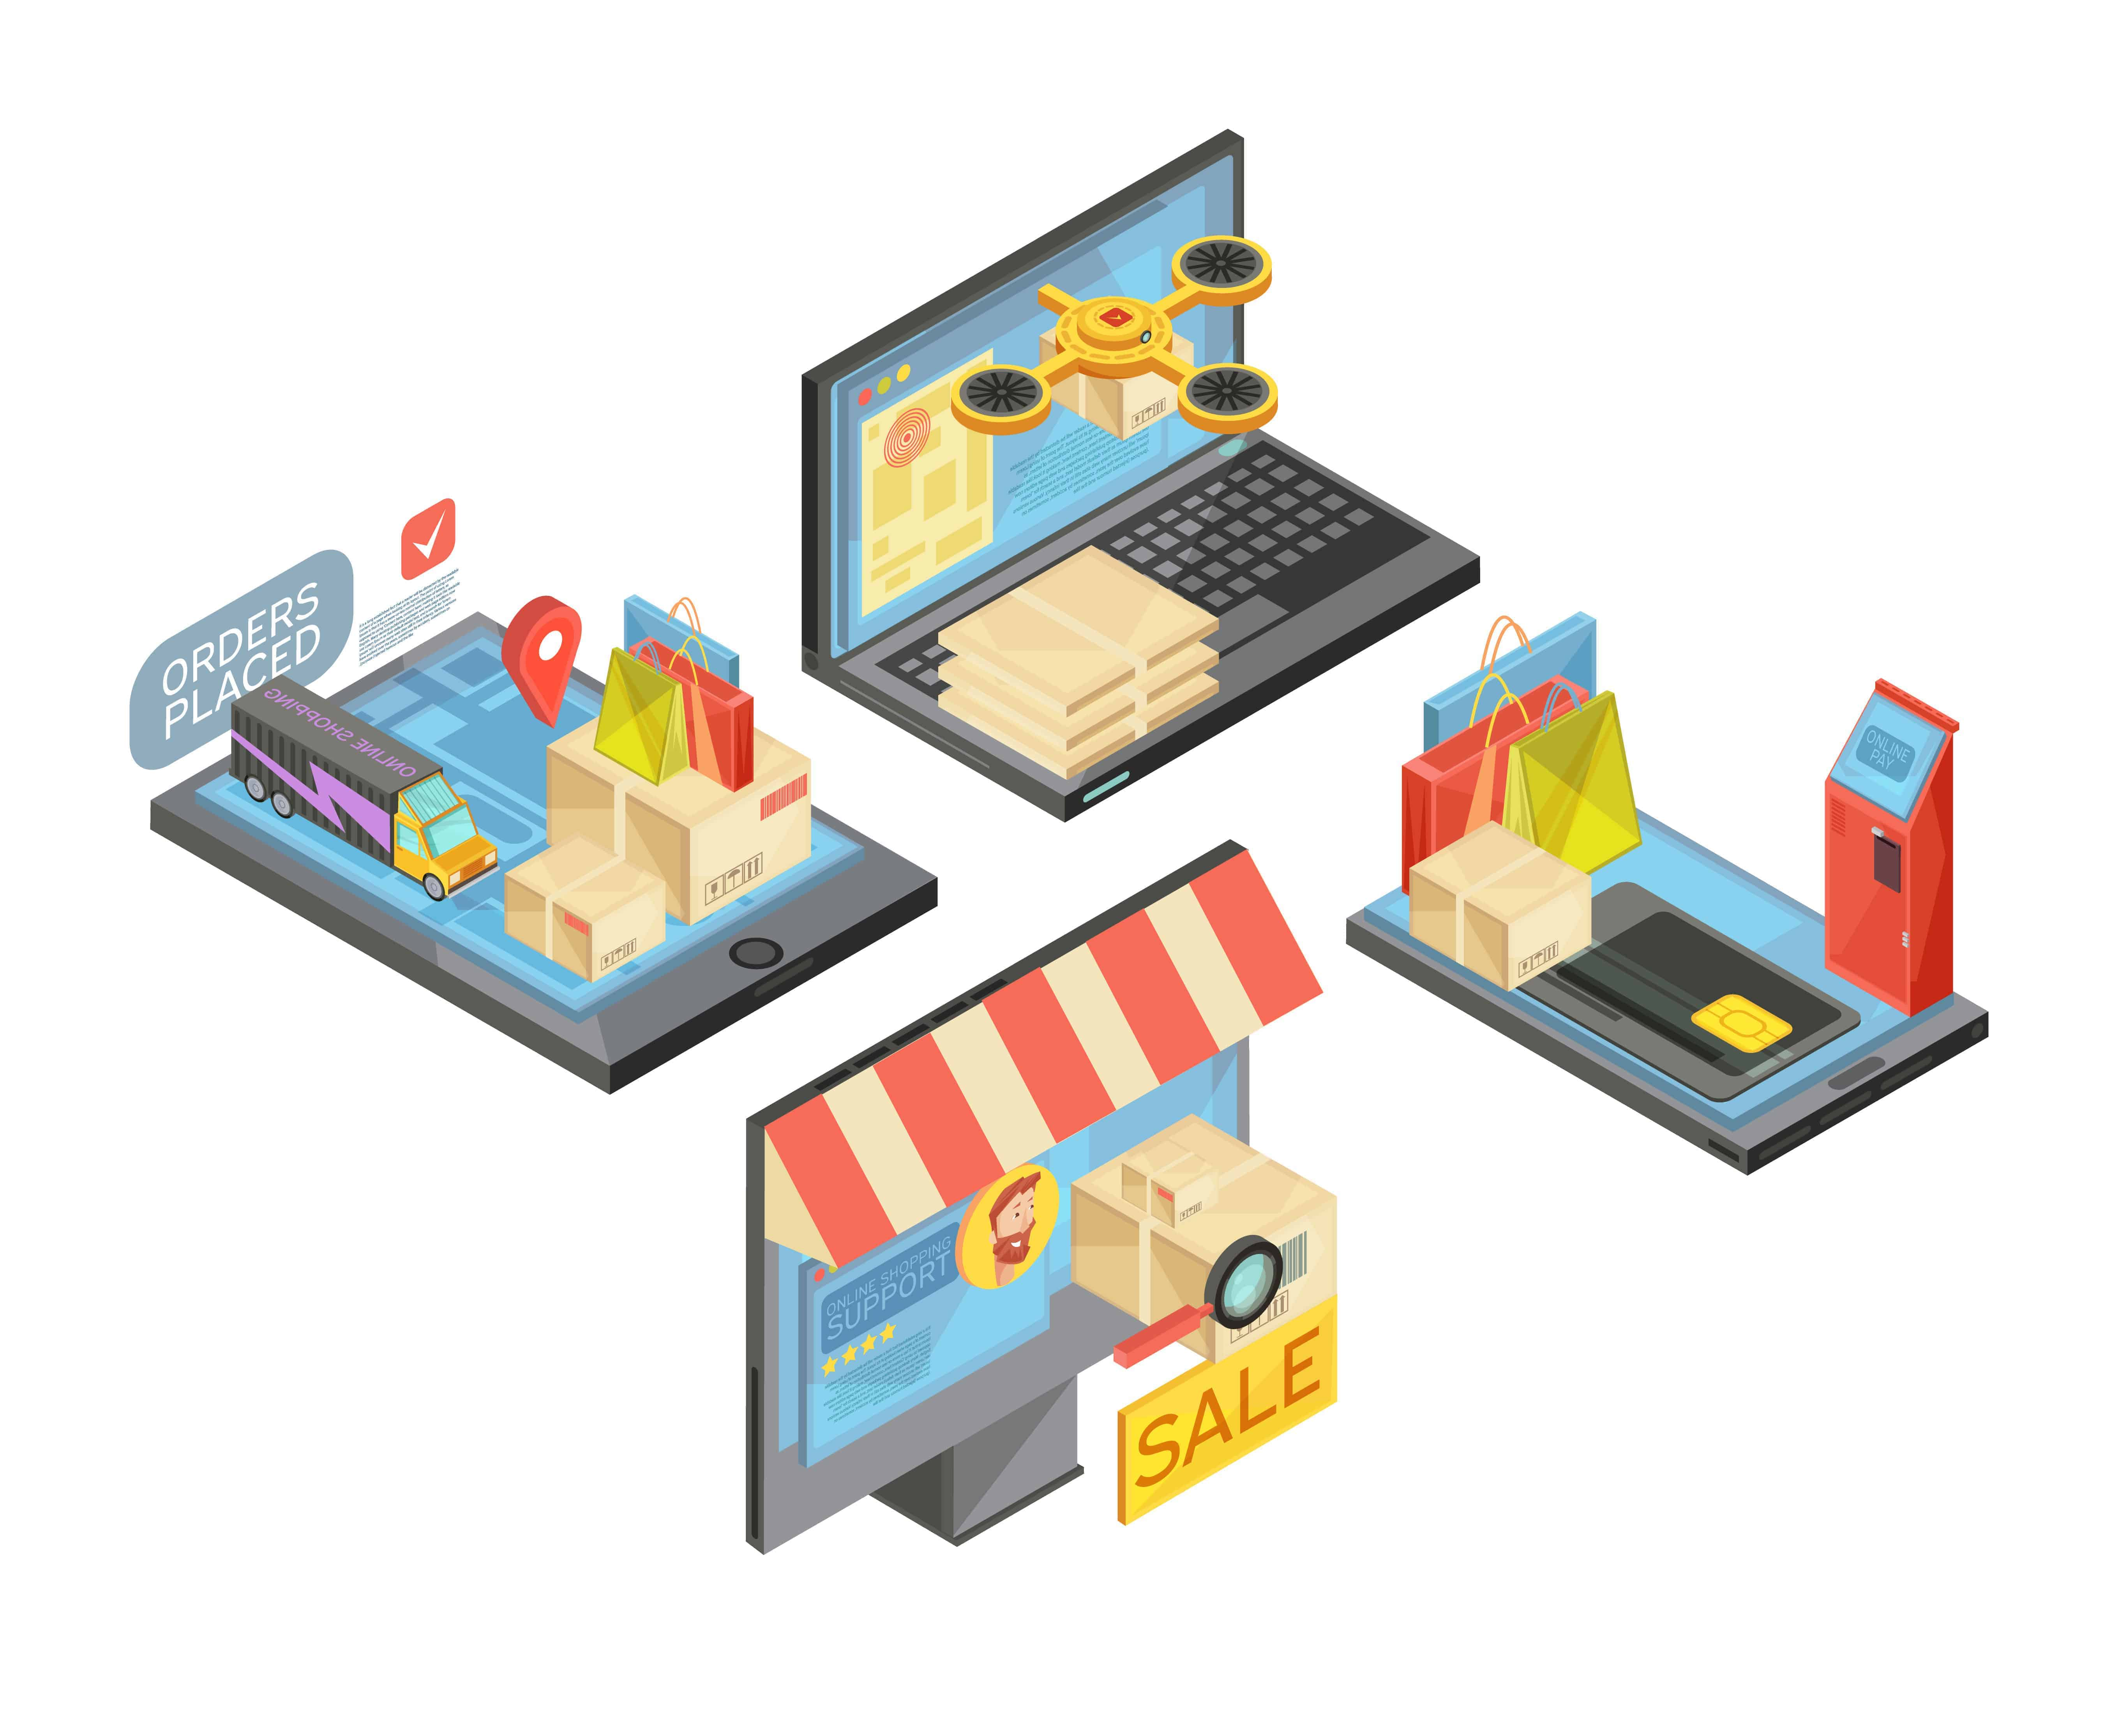 Ecommerce example with diferent types of products on electronic devices